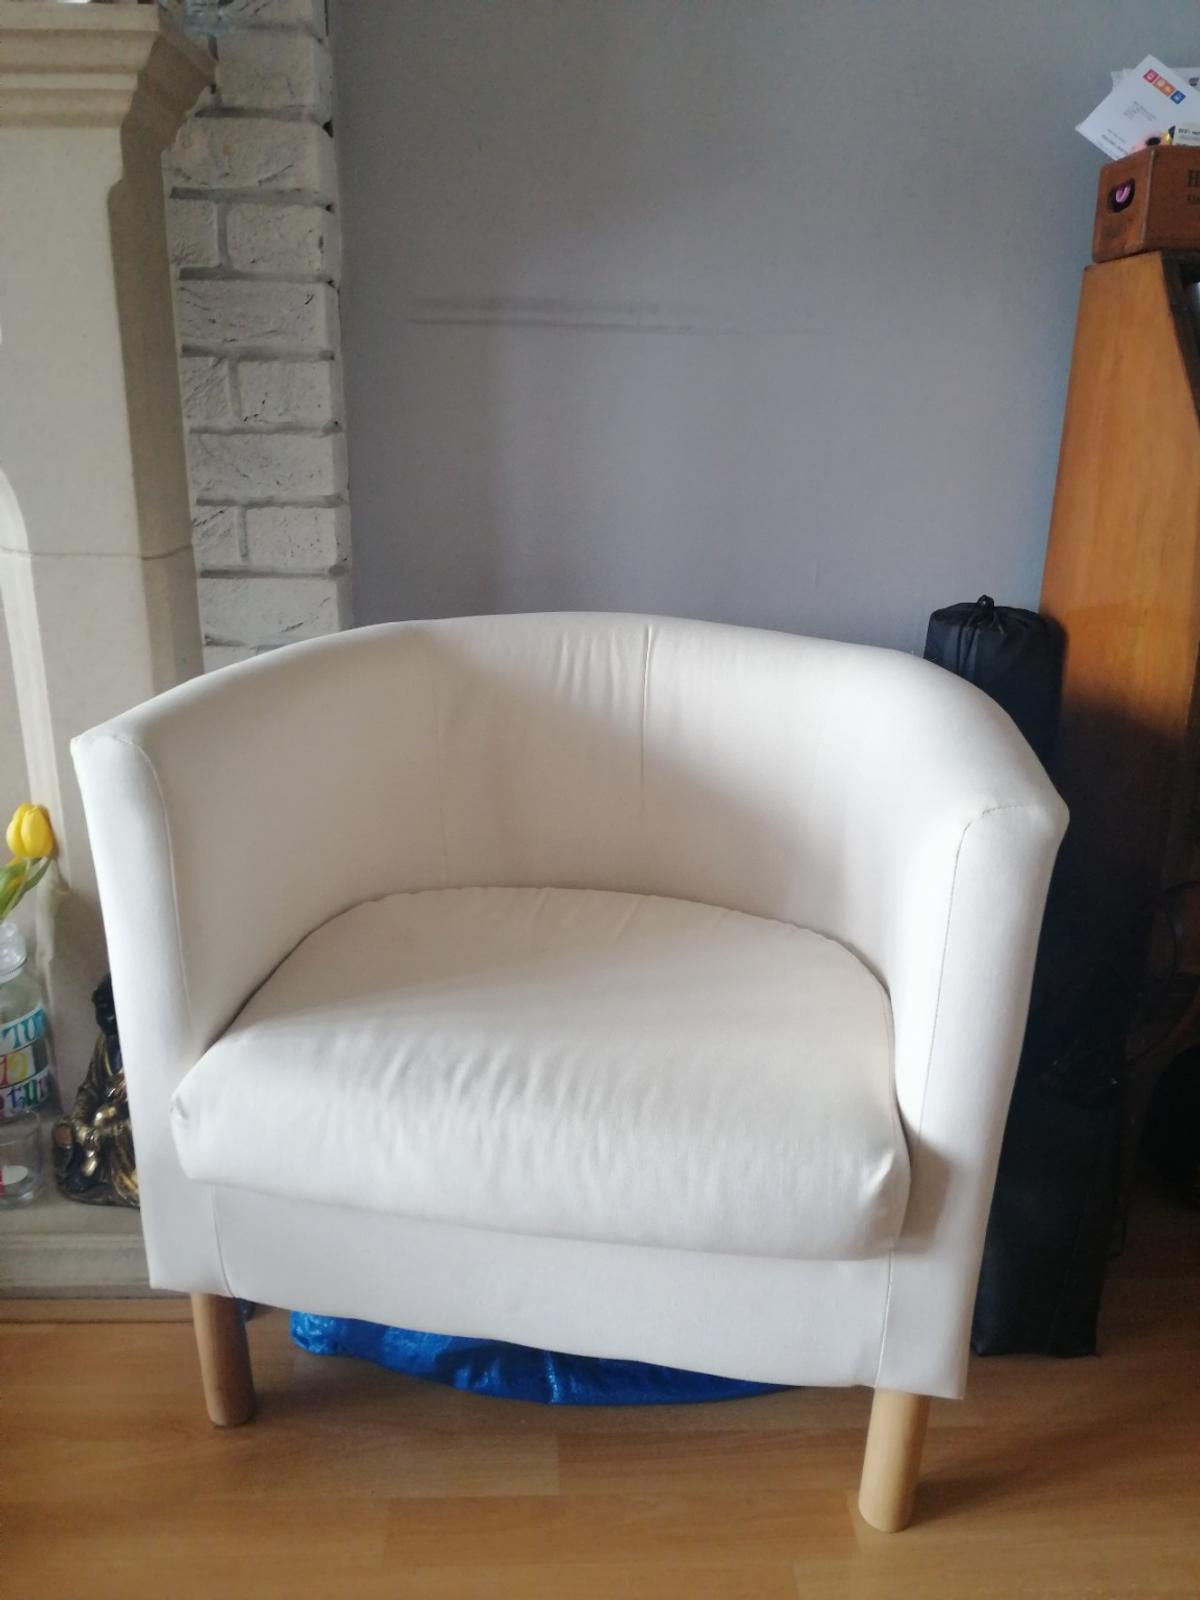 Small Cream Armchair Ikea In B69 Sandwell For 20 00 For Sale Shpock